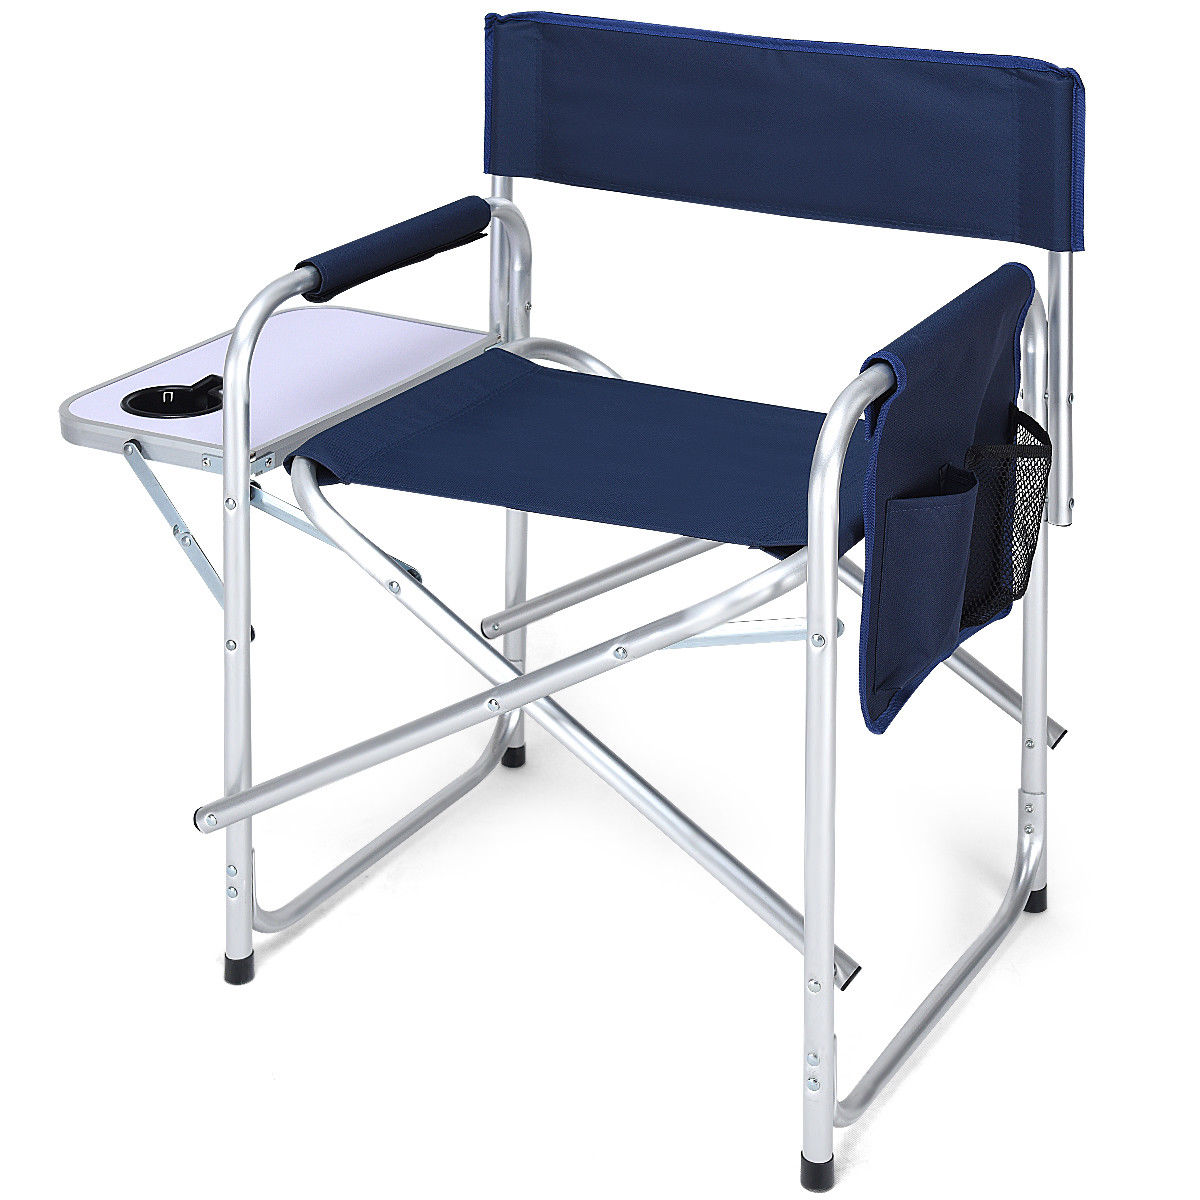 Costway Folding Directoru0027s Chair Side Table Outdoor Camping Fishing W/Cup  Holder Navy